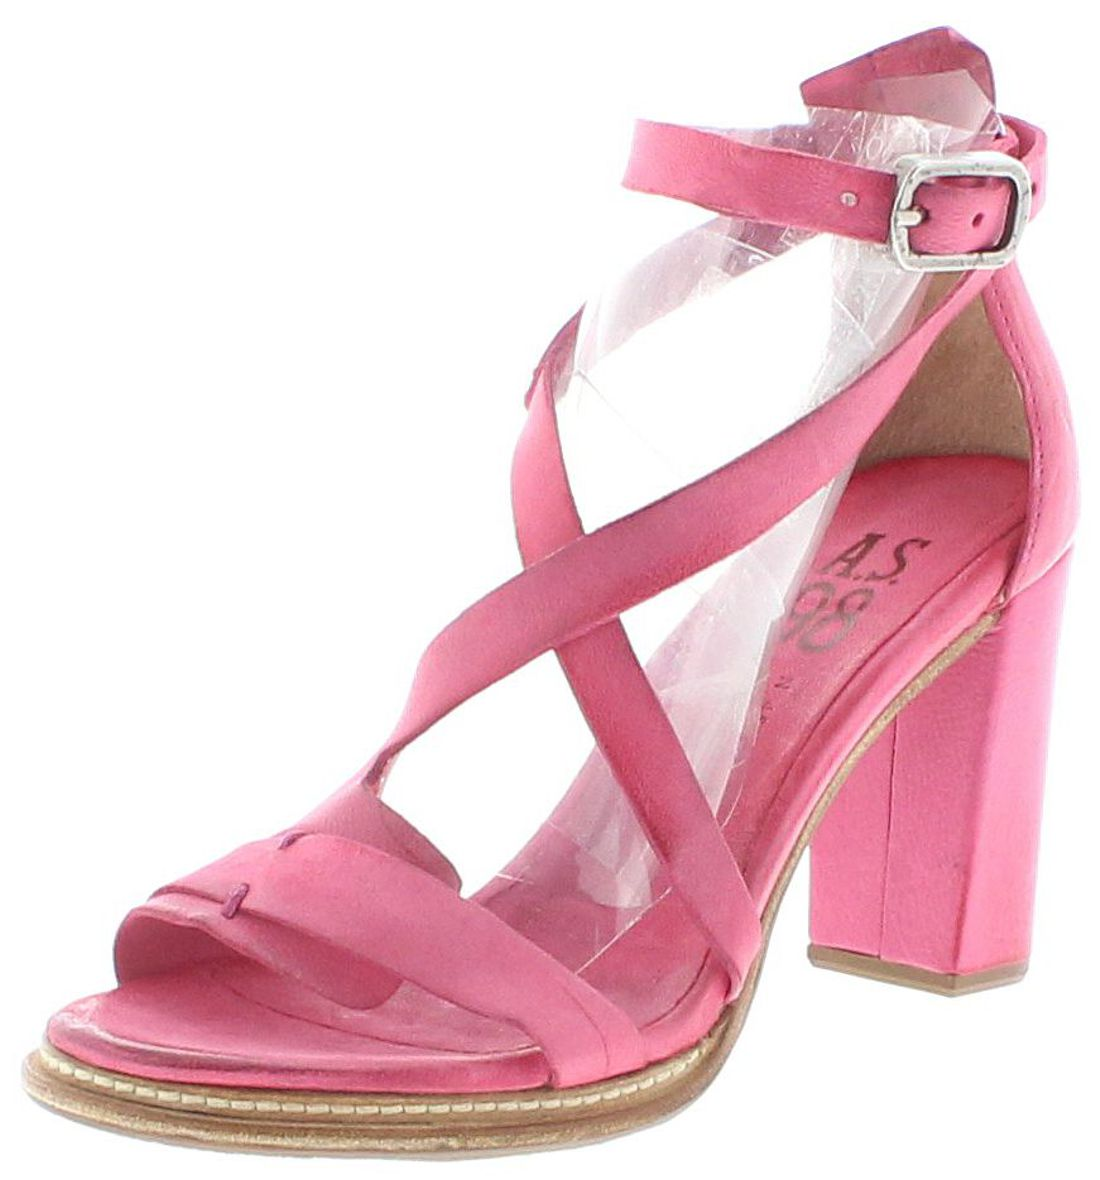 A.S.98 589004 Shock Damen Fashion Sandale rosa